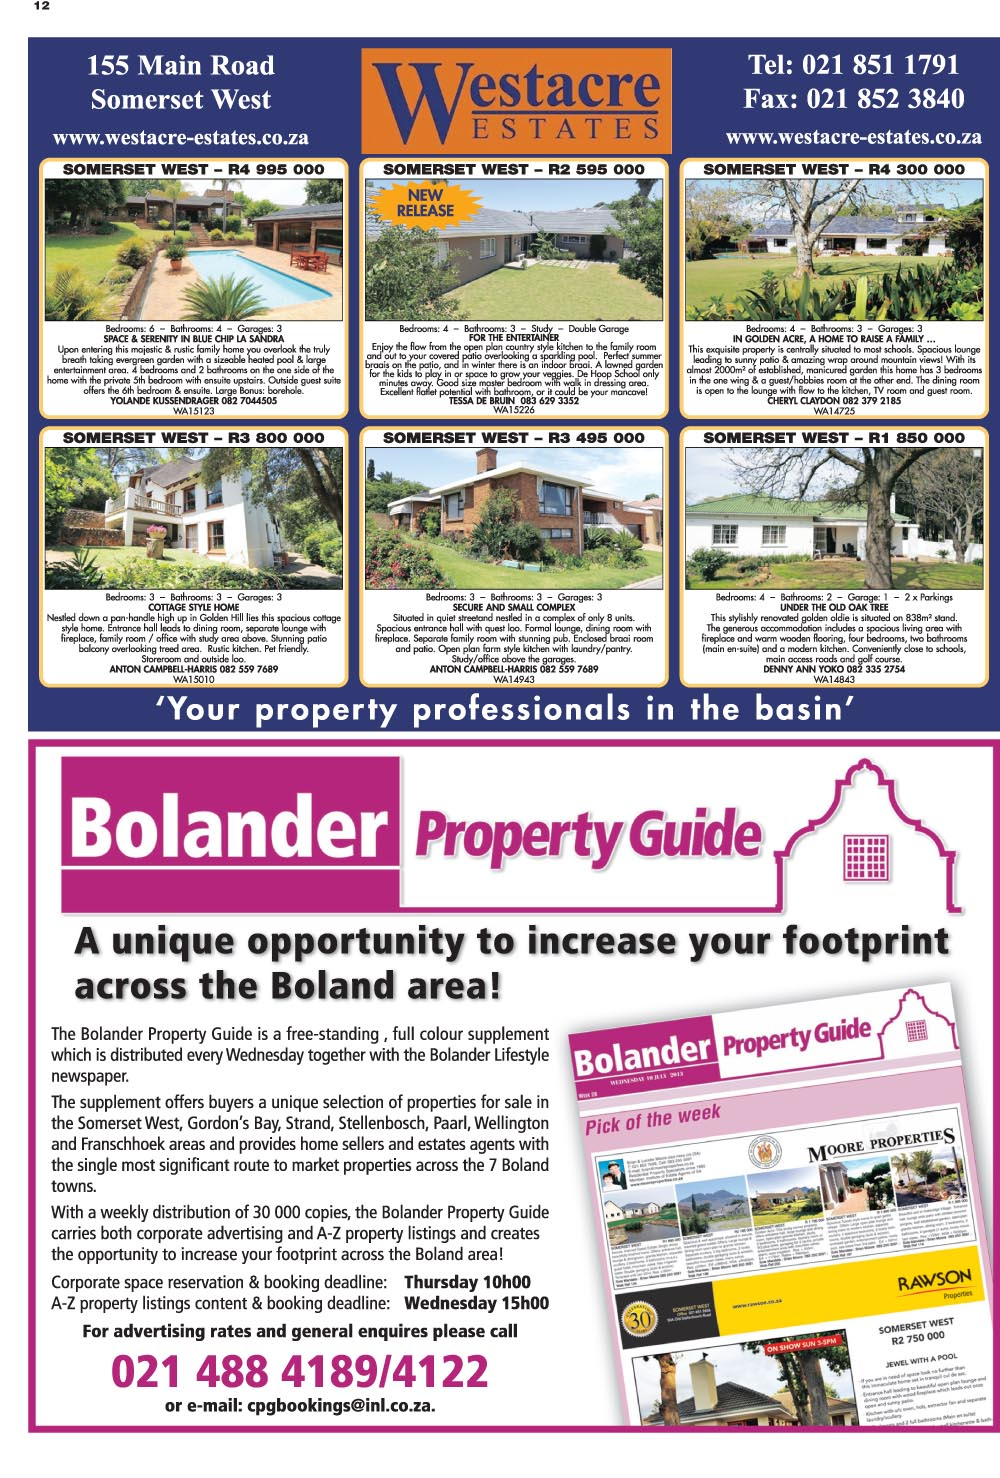 You are browsing images from the article: Property Selection 20 january 2016